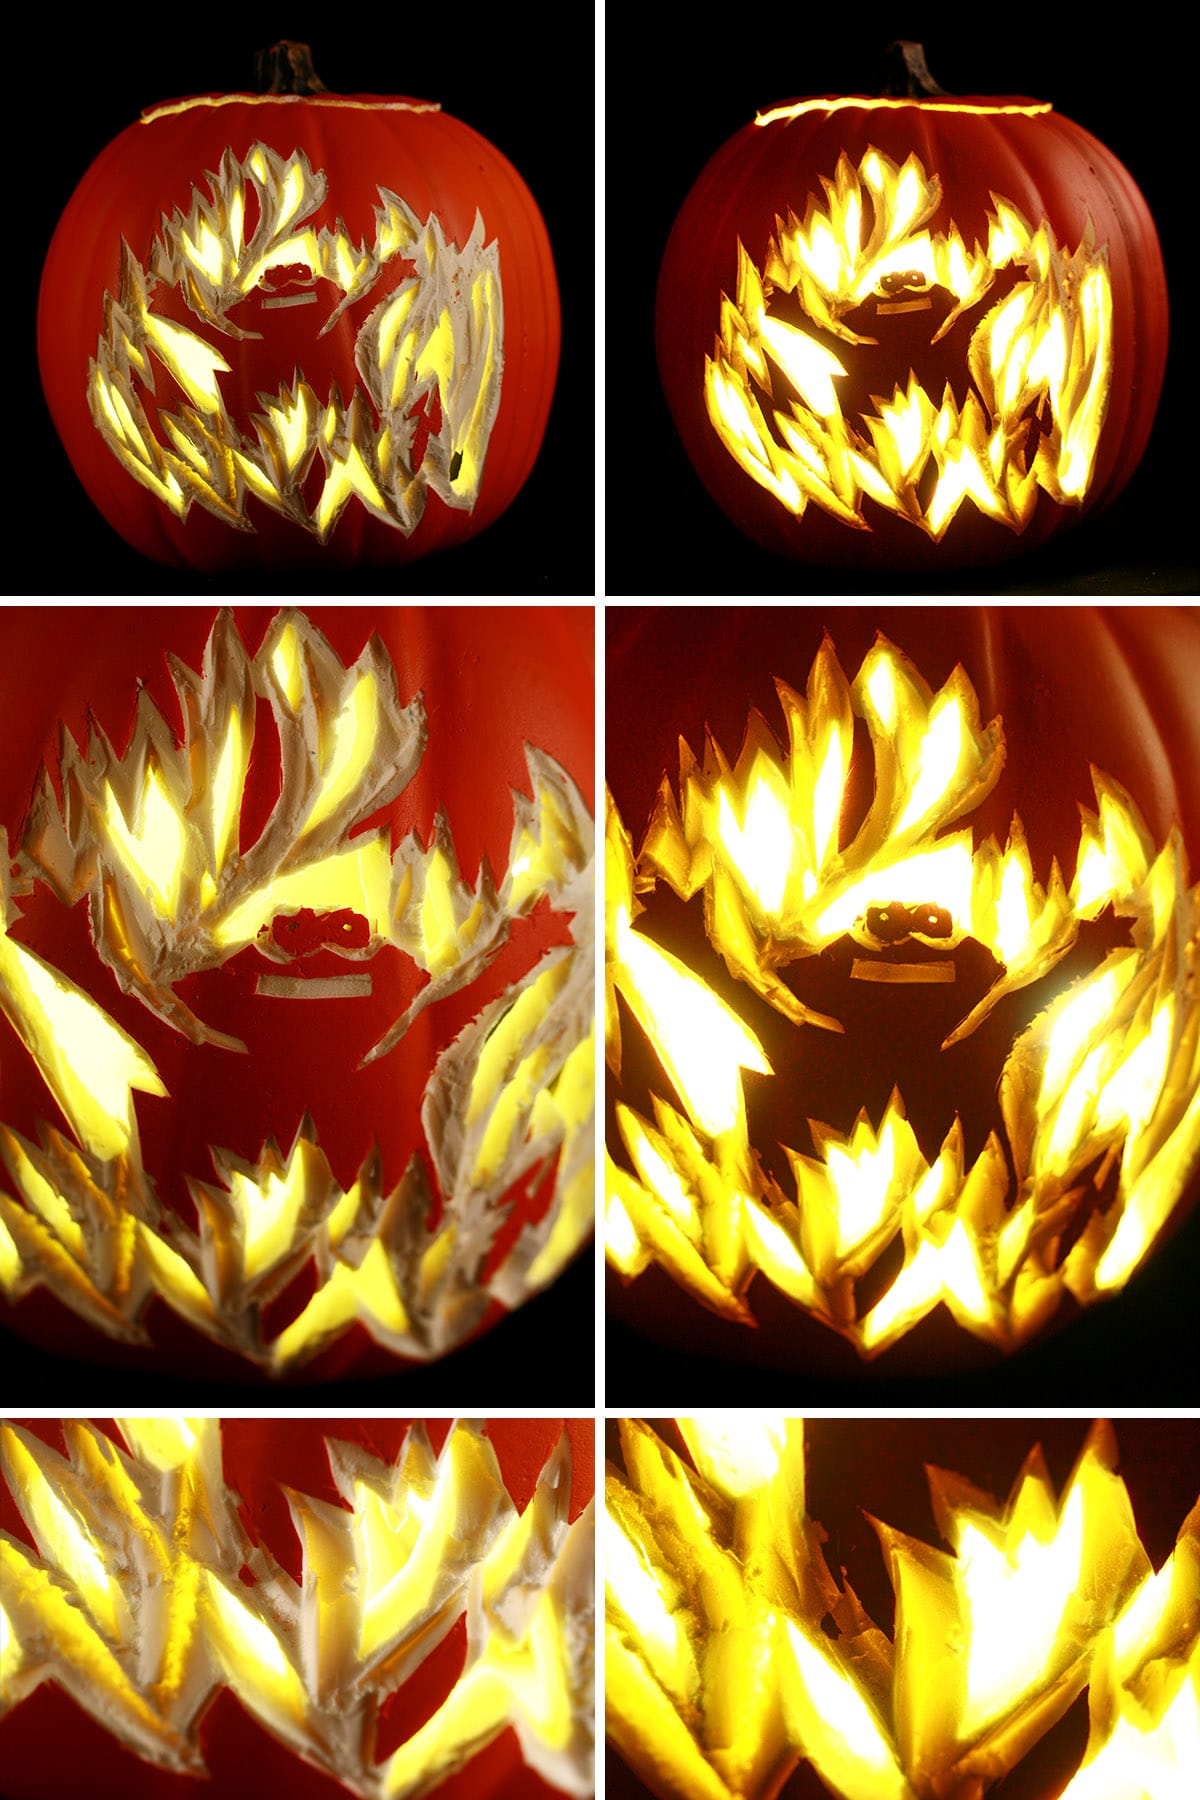 Several different views of the Elmo in Flames foam pumpkin.